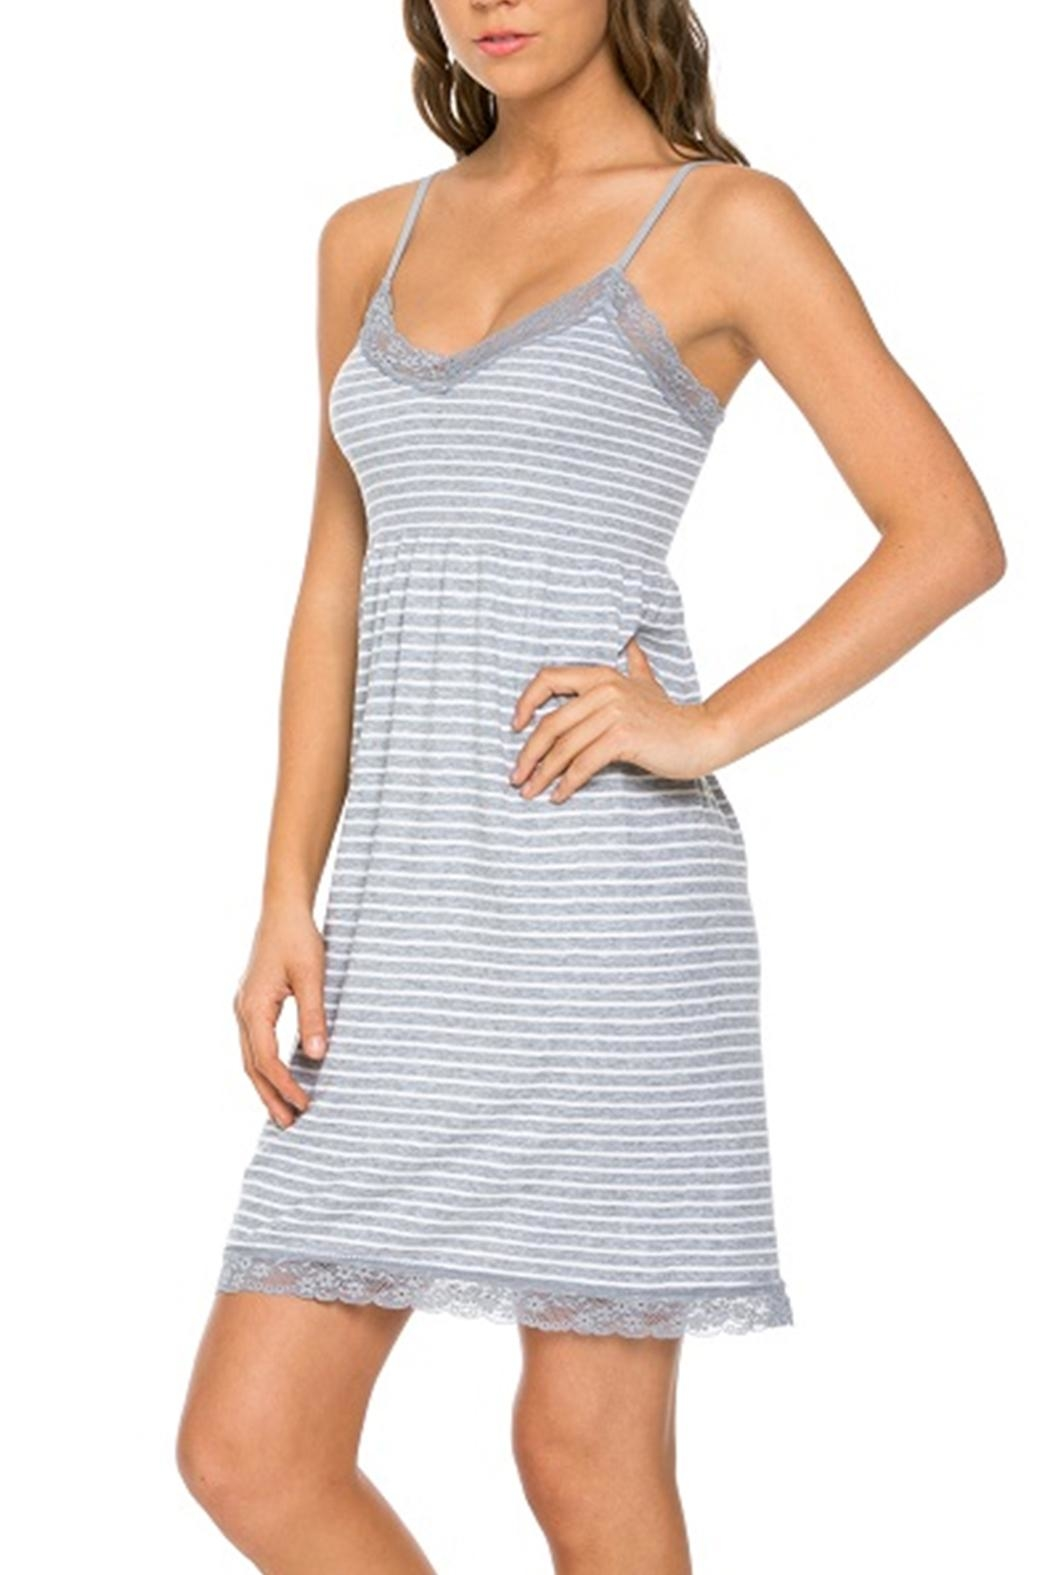 Marilyn Monroe Intimates Stretchy Grey-Stripe Nightgown - Front Full Image